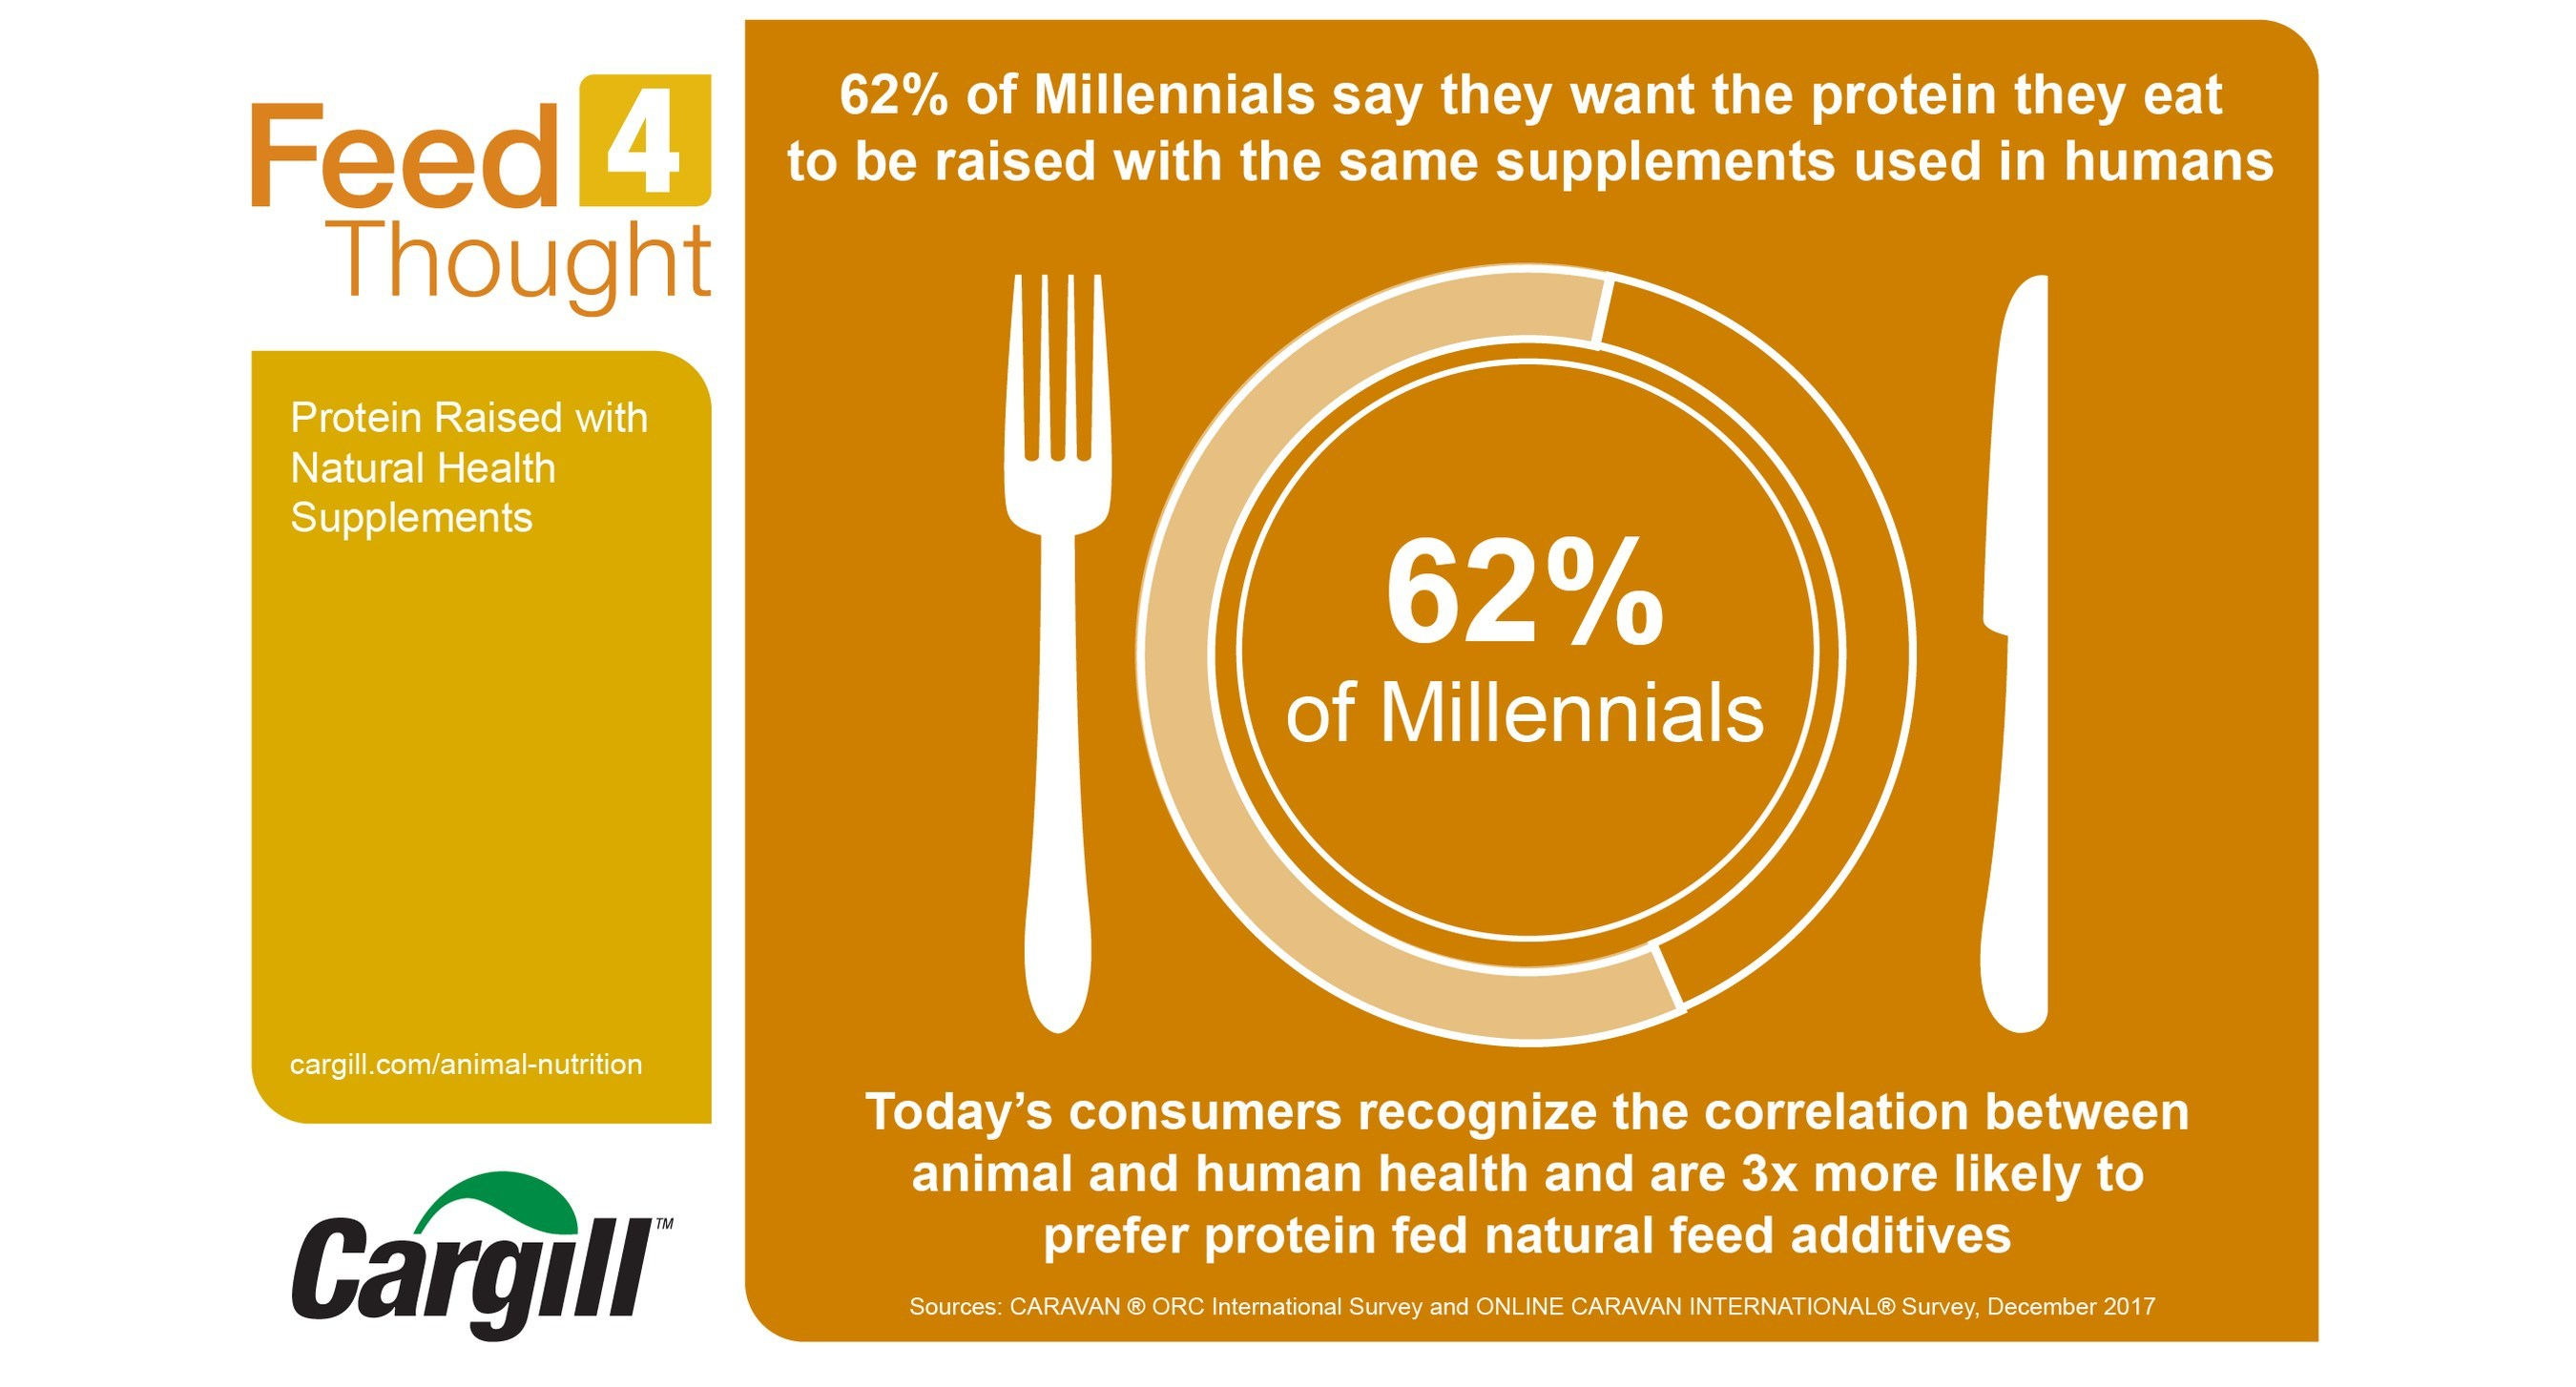 Cargill's latest Feed4Thought survey, which polled more than 1,000 people in the U.S. in Dec. 2017, found 62 percent of millennials want the protein they eat to be raised with the same health supplements used in humans, such as probiotics, plant extracts and essential oils.